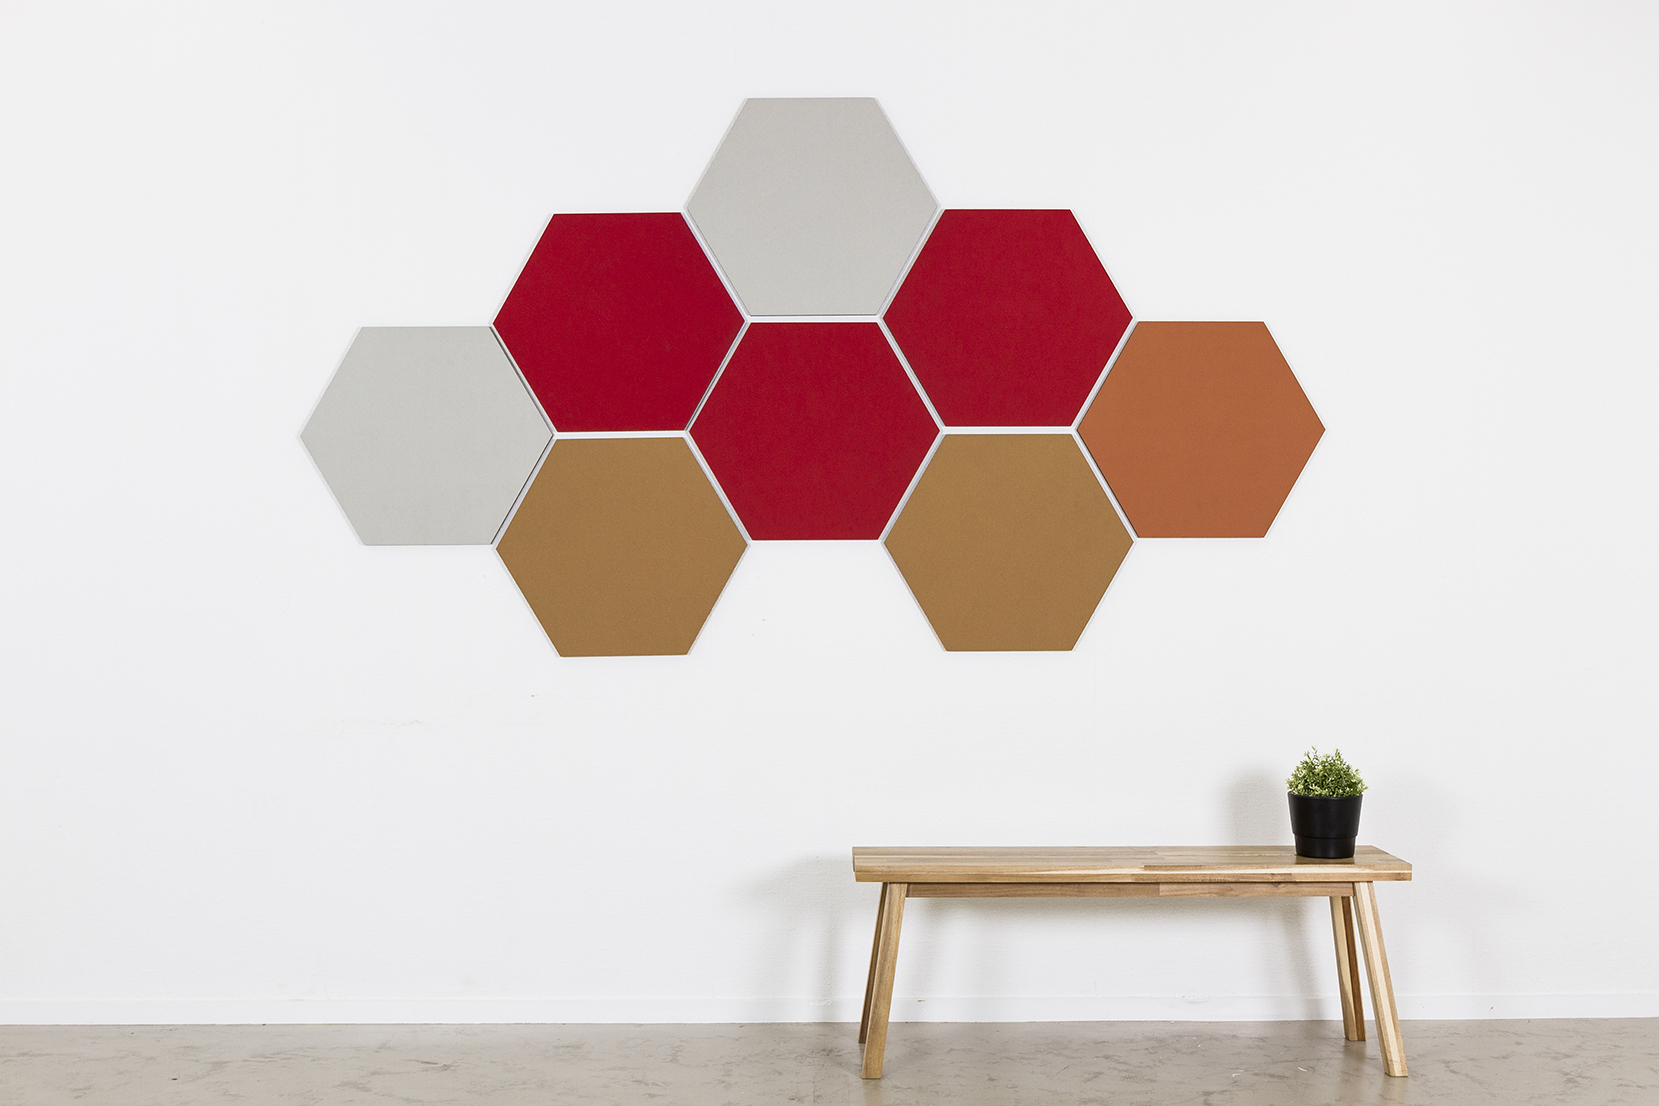 Chameleon Pinning - Shapes - These round pin boards combine functionality and design. Match several boards together into a personal constellation. Chameleon Pinning Shapes are made of all natural materials.